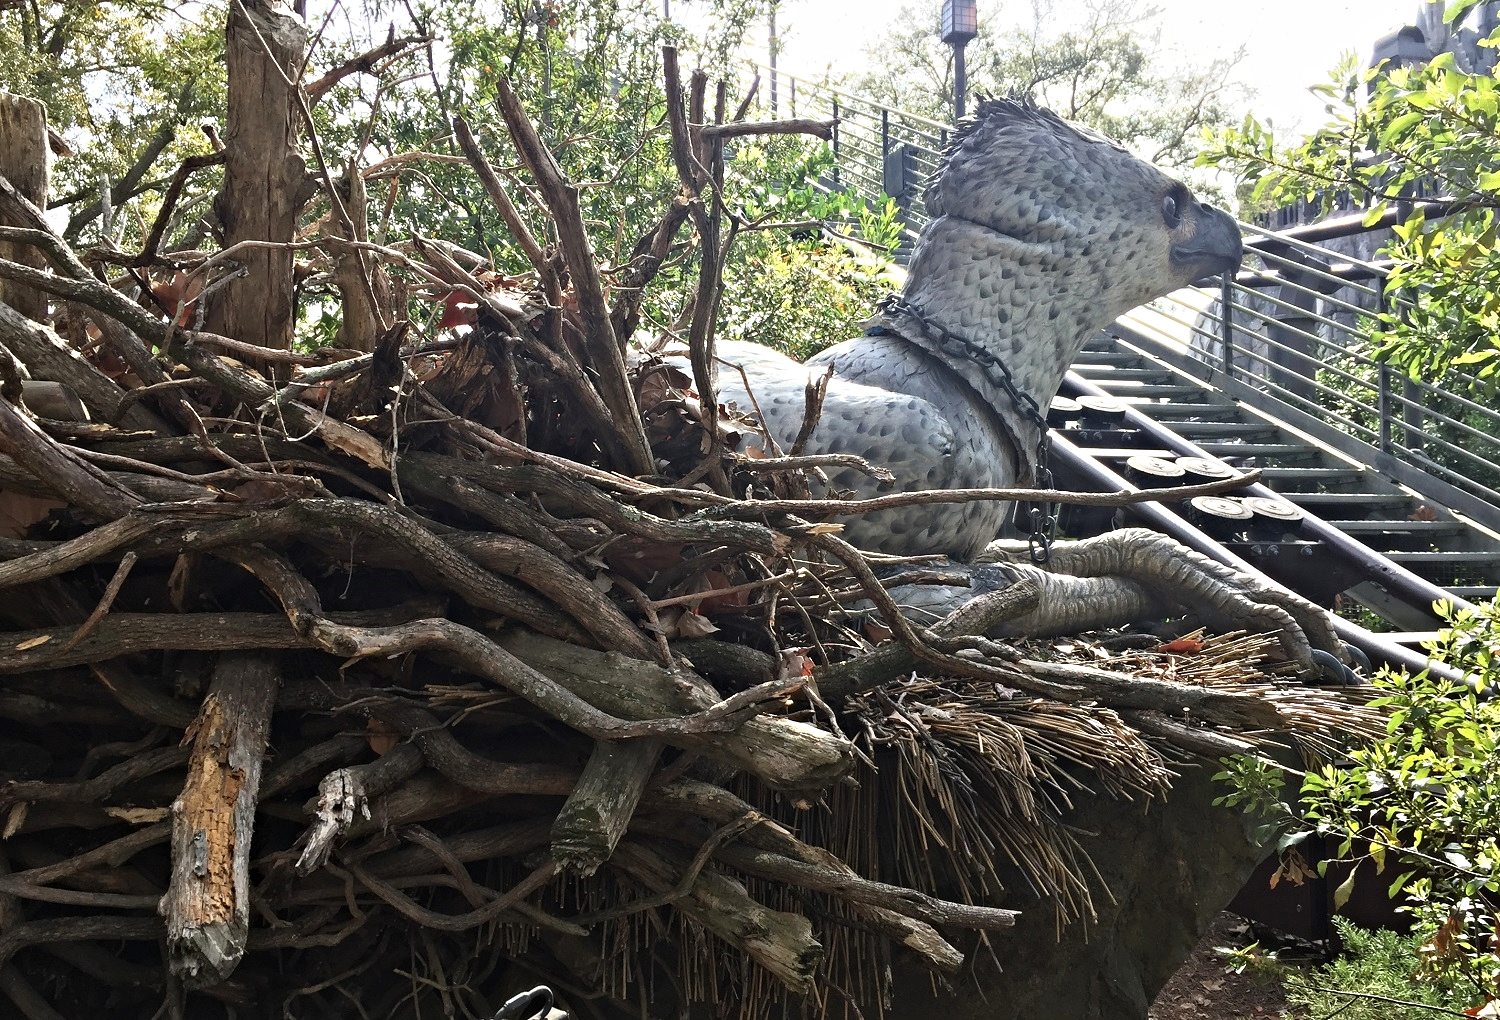 You can see a Hippogriff in his nest from the queue and the ride.